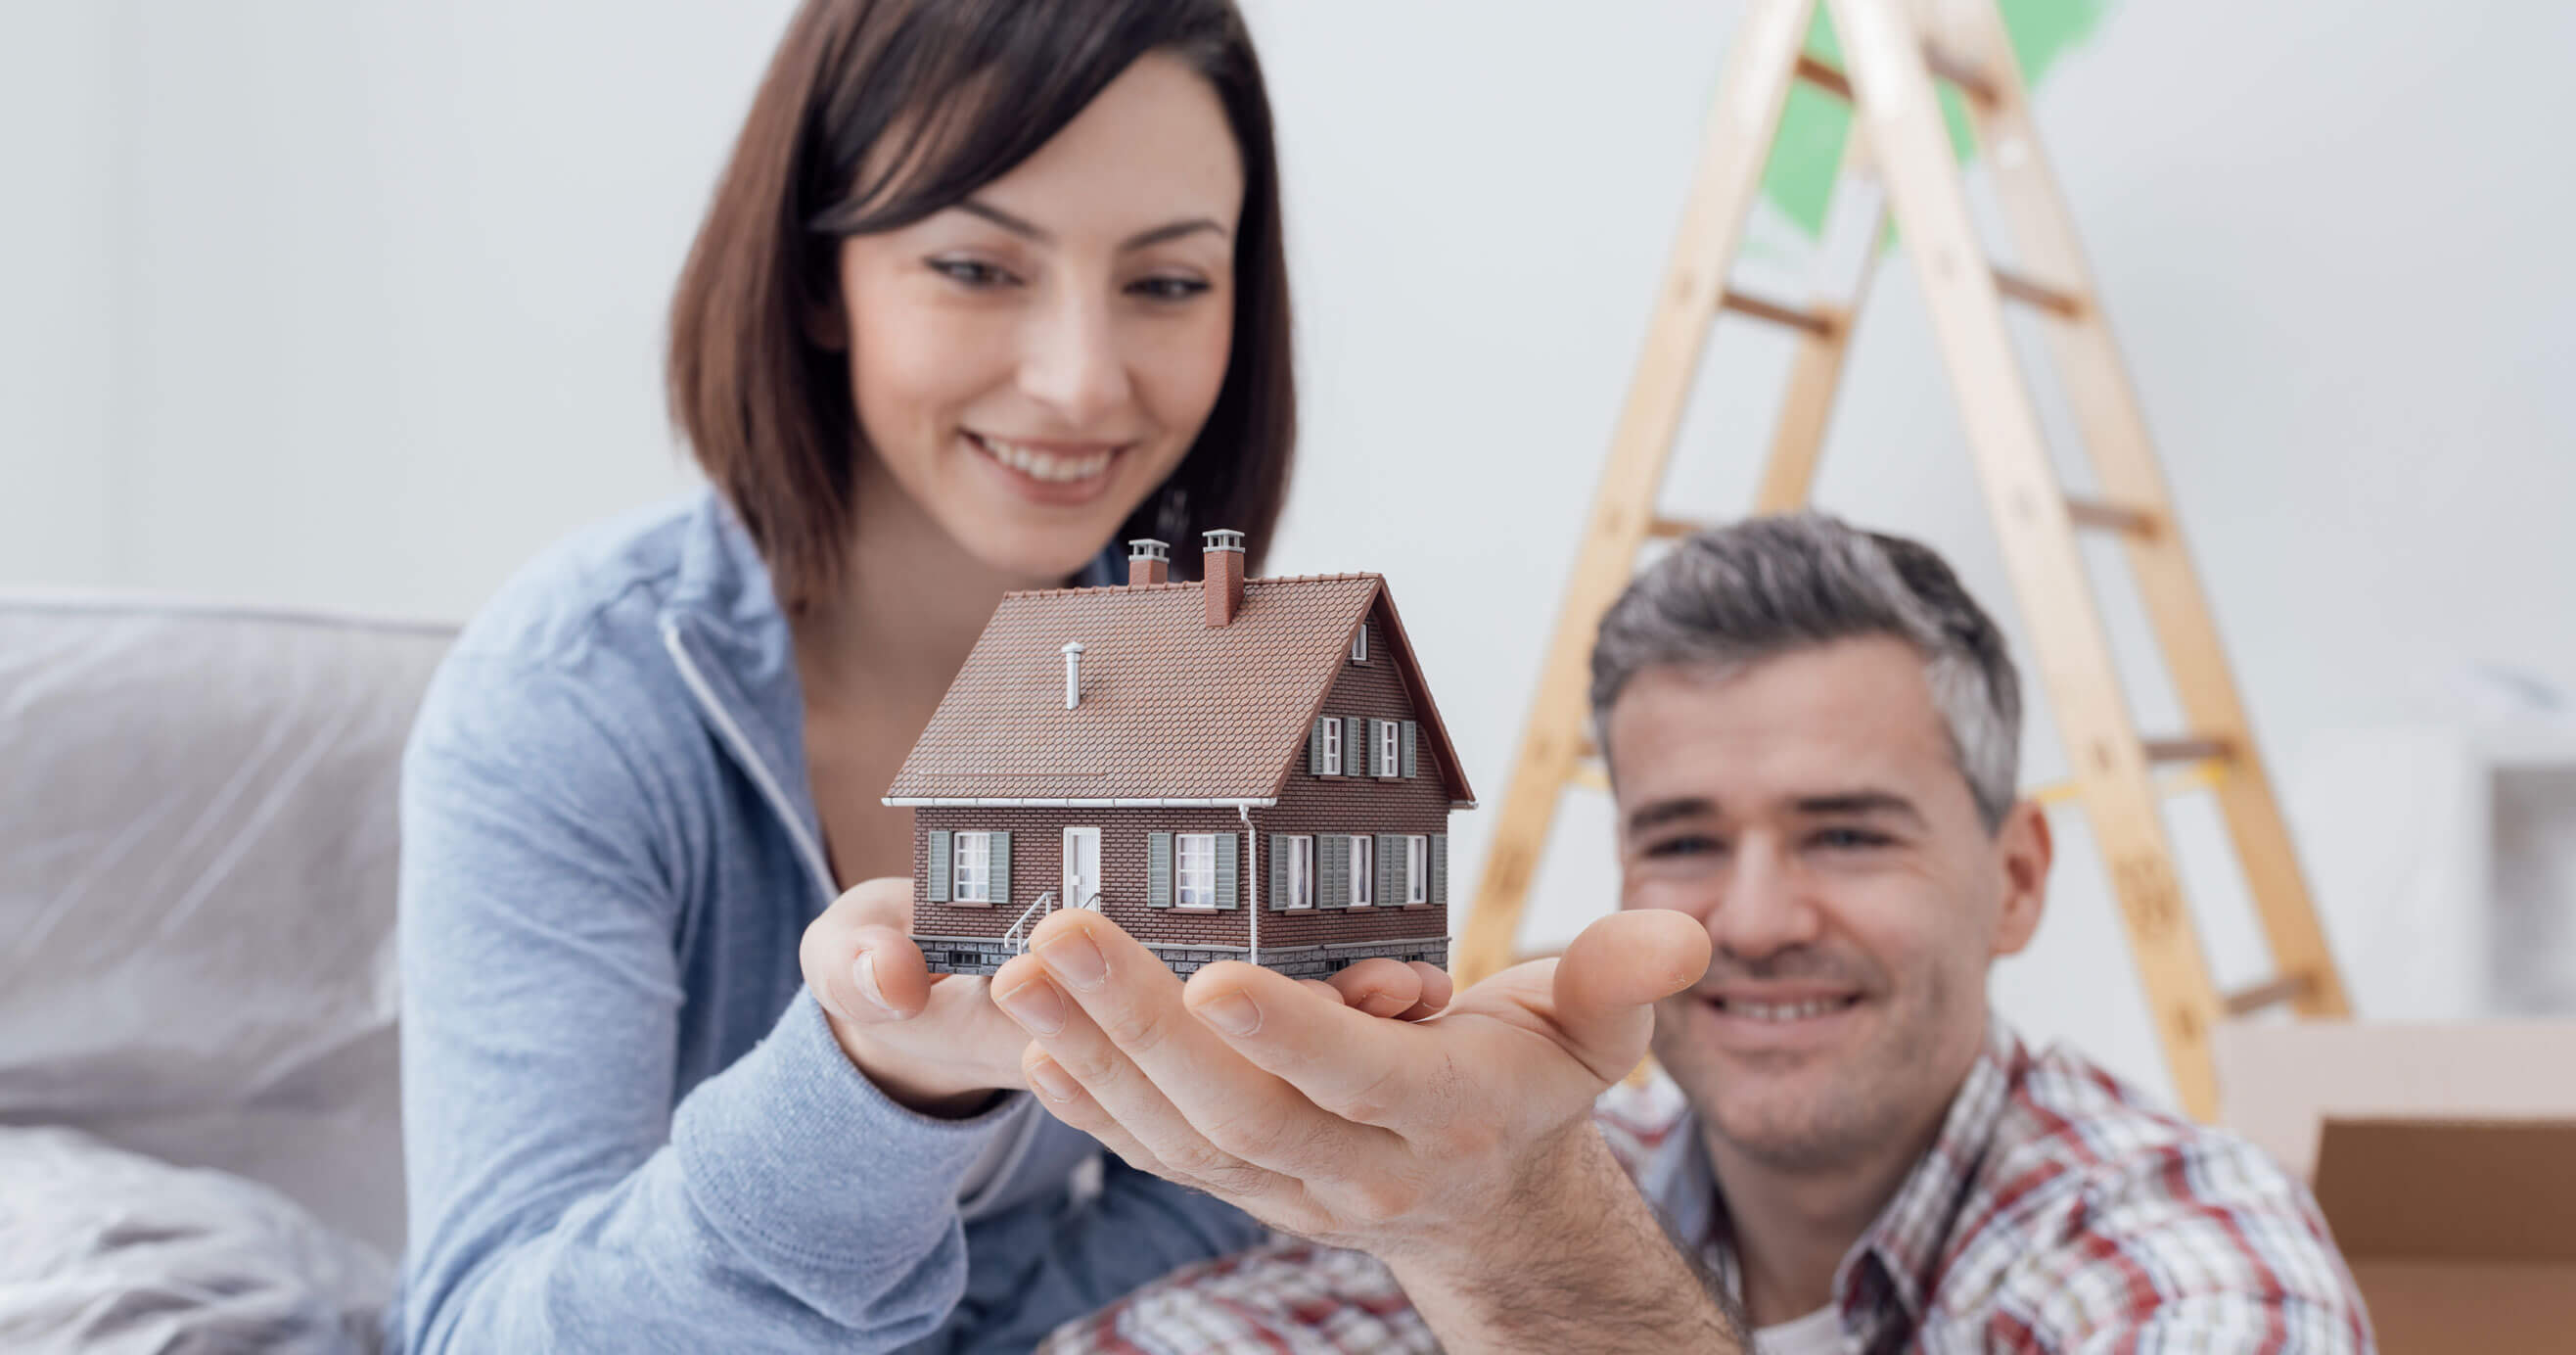 Couple holding model of a house